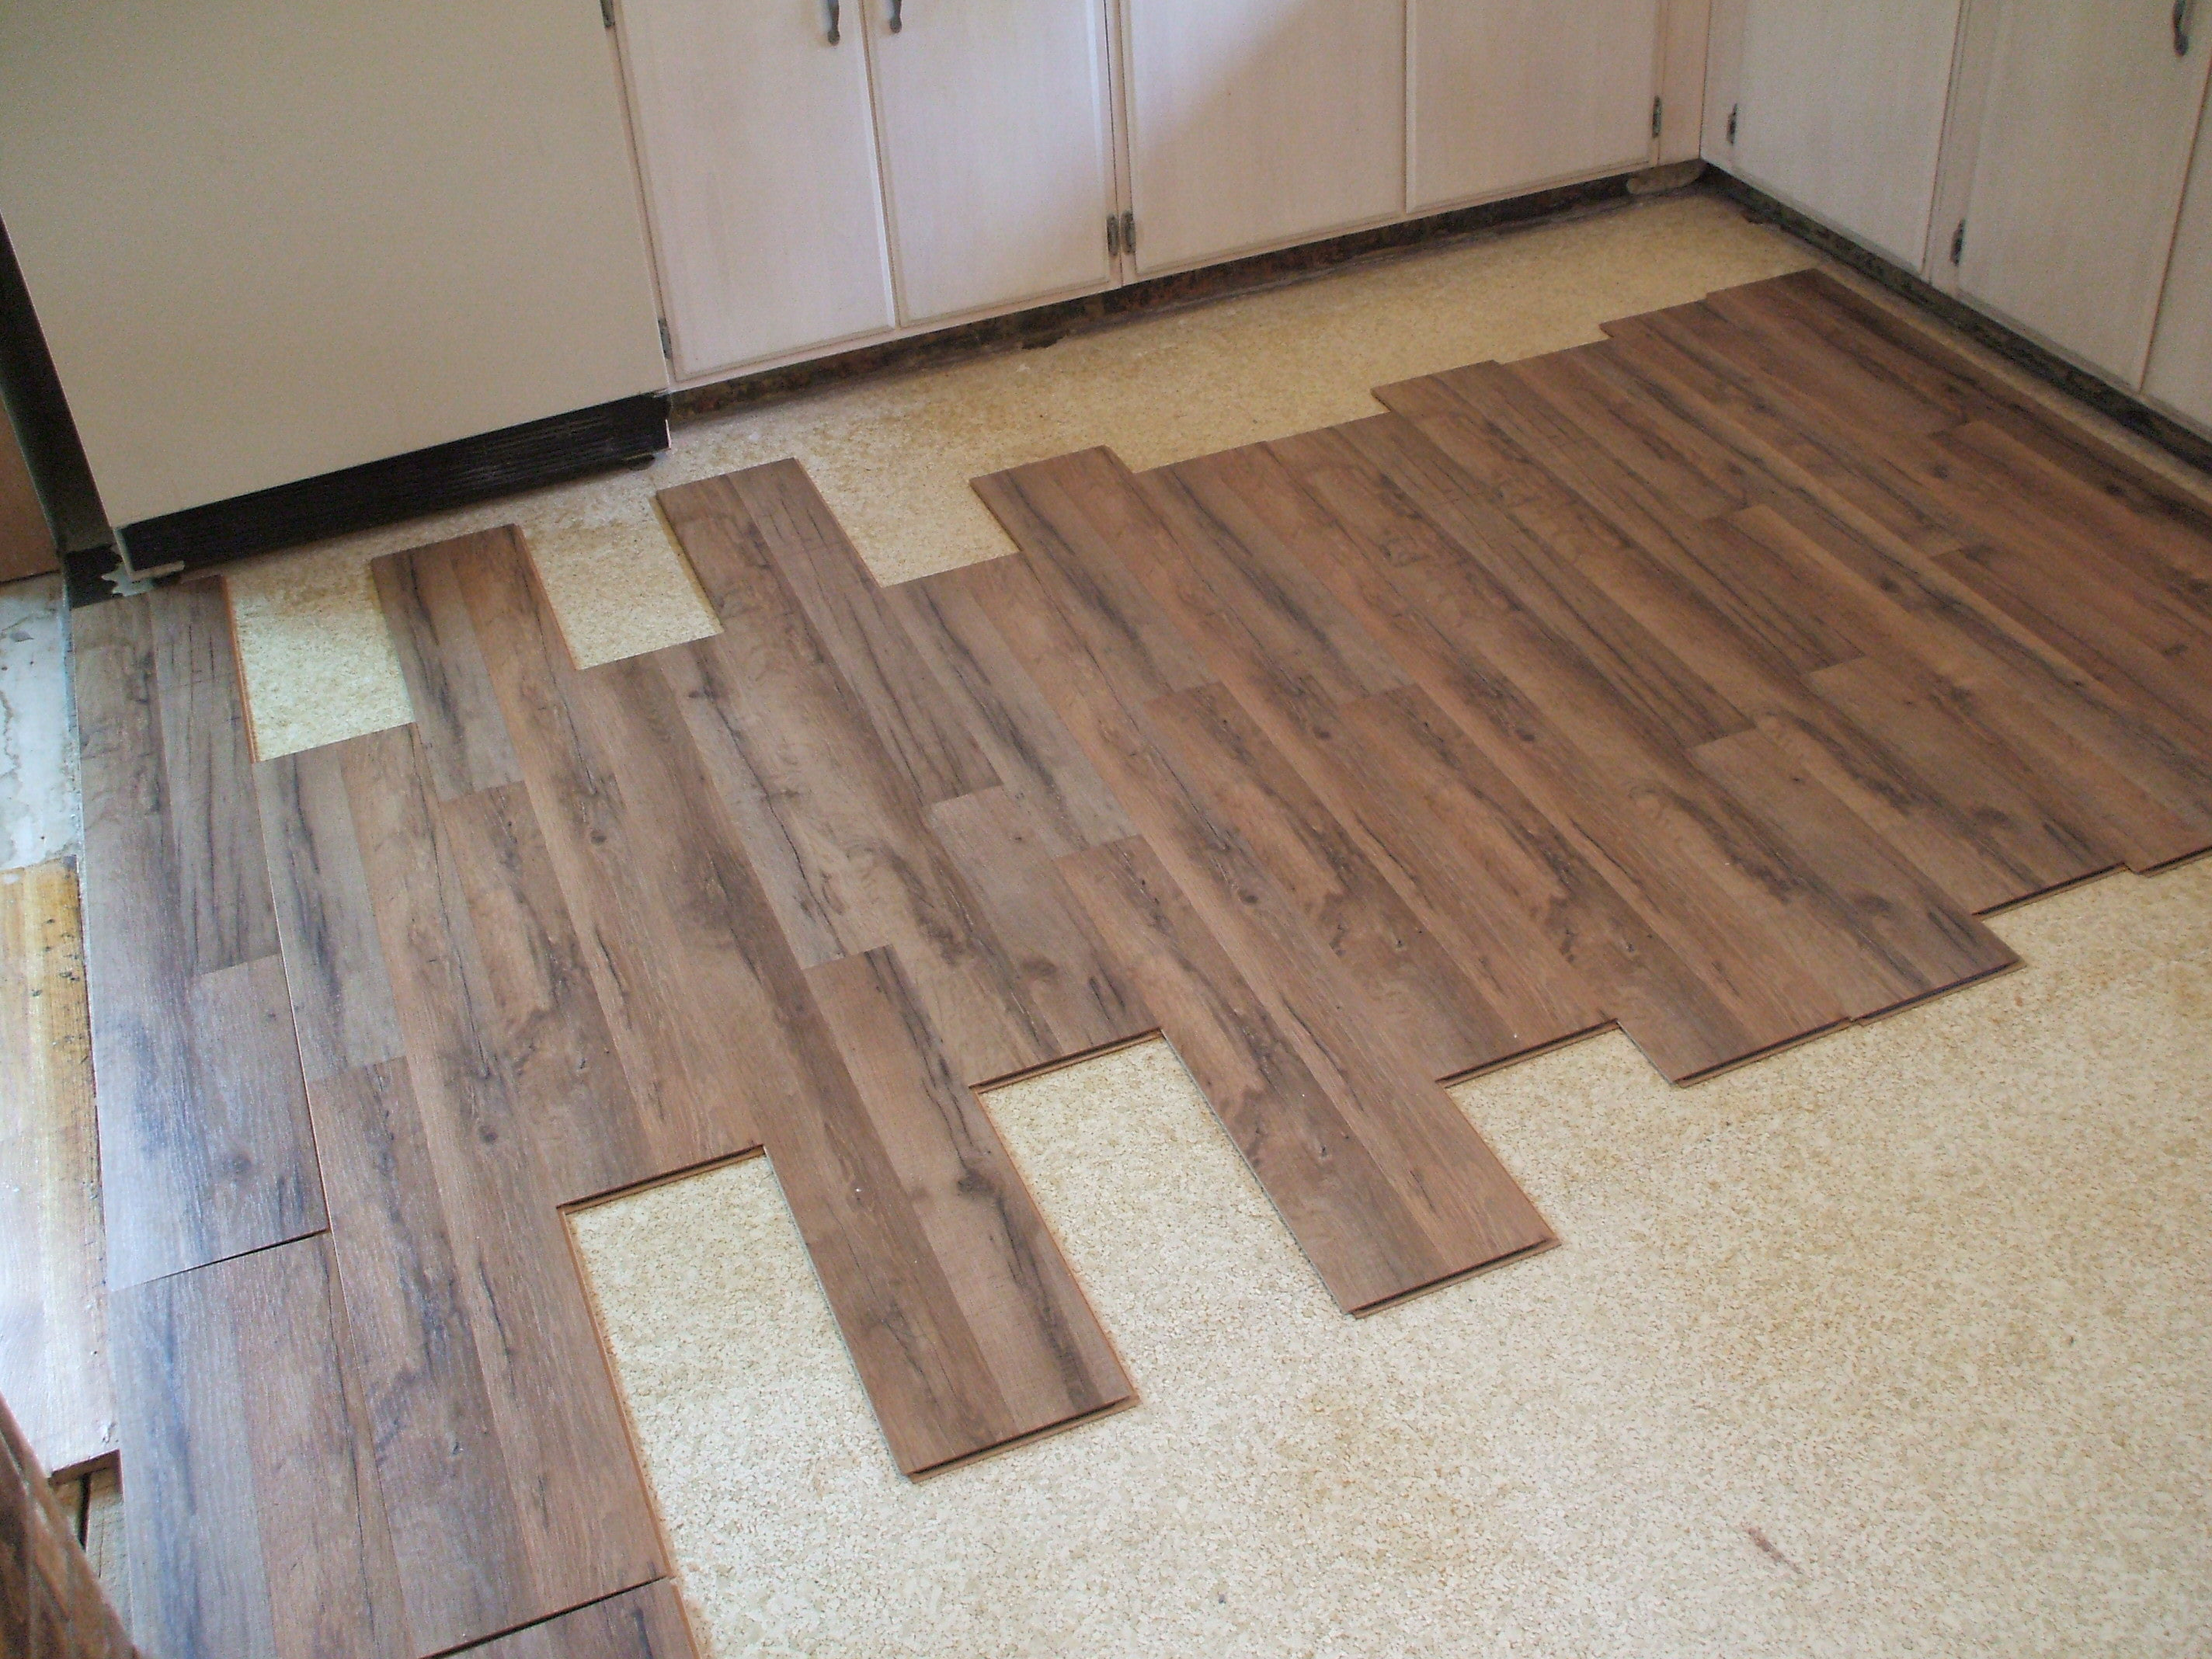 Flooring options for your rental home which is best dailygadgetfo Images